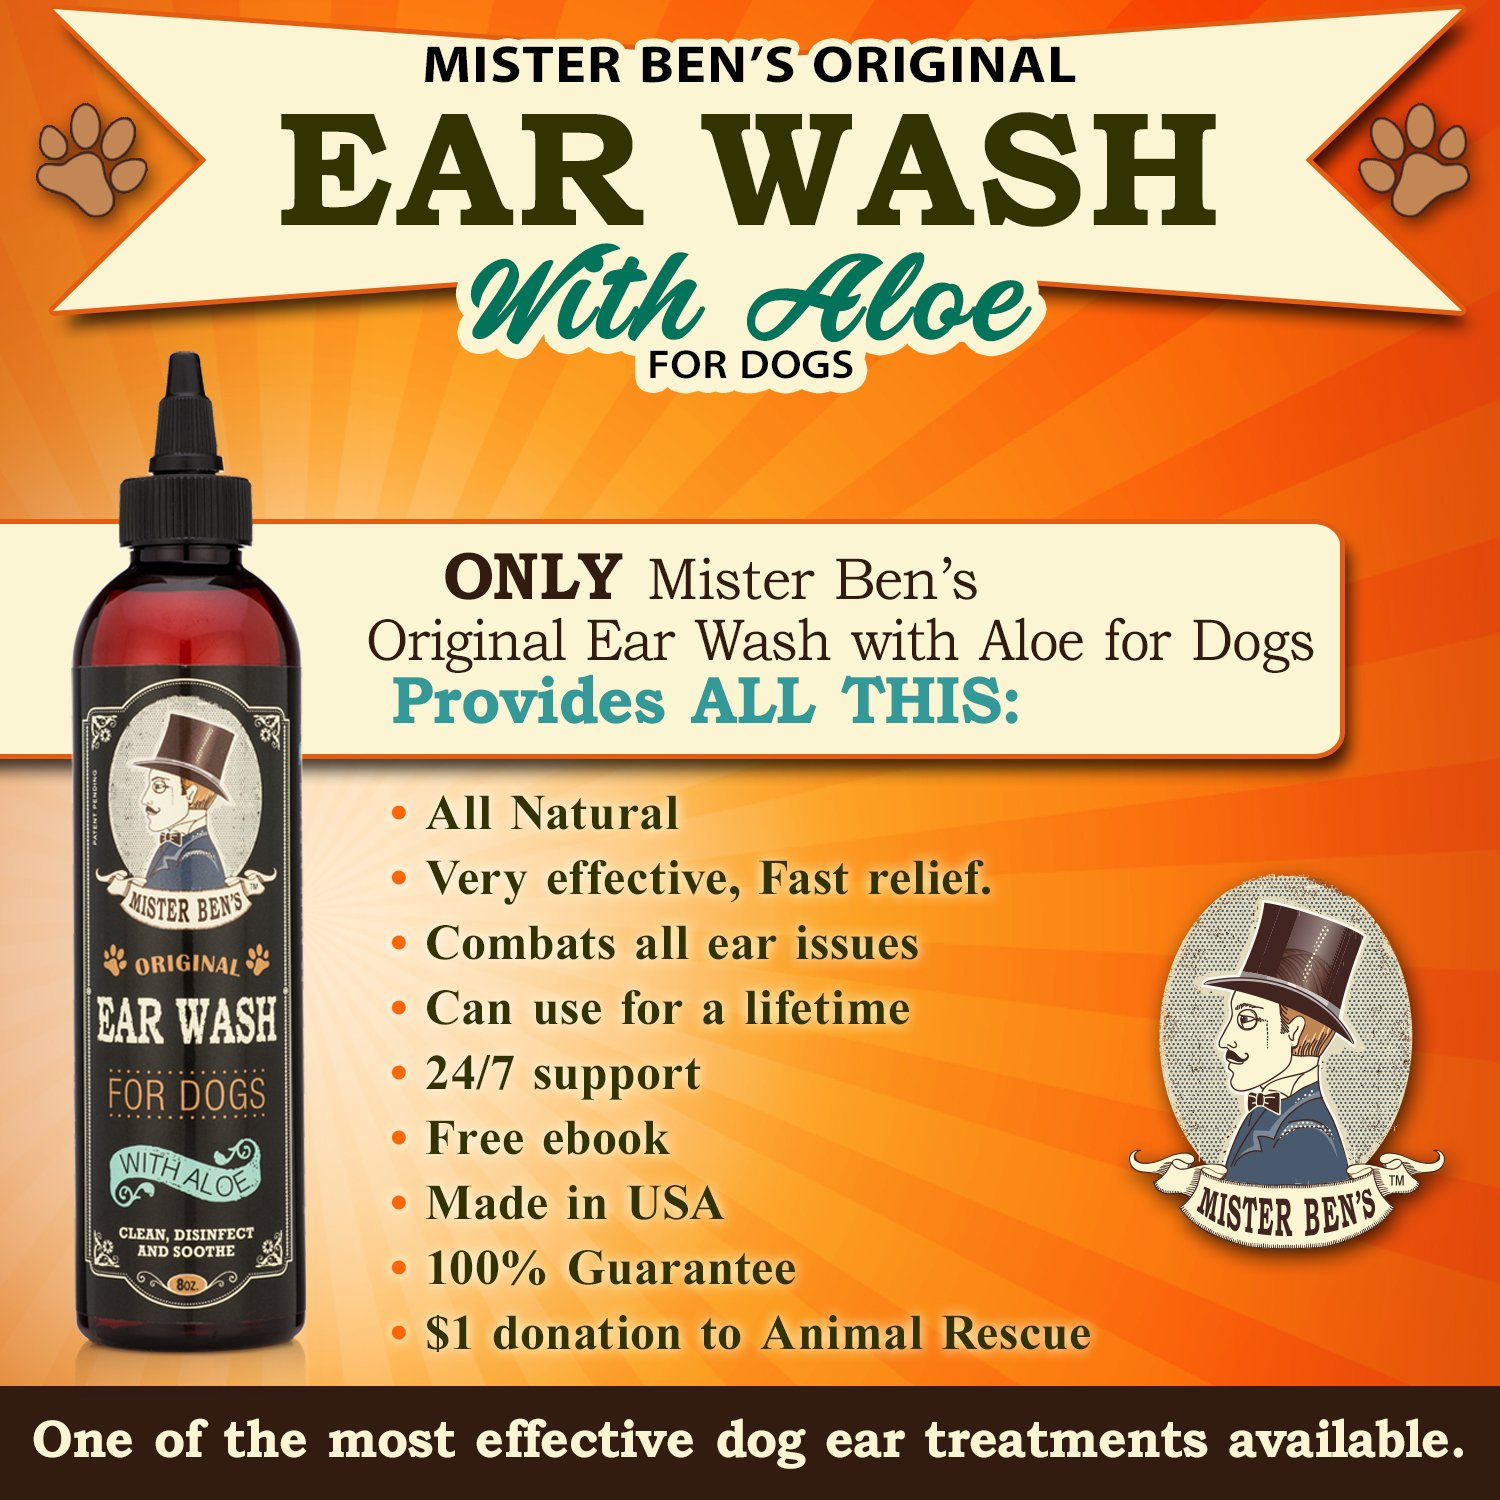 Mister Ben's MOST EFFECTIVE DOG EAR WASH Voted the Best Dog Ear Cleaner - Provides FAST RELIEF from Dog Ear Infections, Irritations, Itching, Odors, Bacteria, Mites, Fungus & Yeast by Mister Ben's (Image #1)